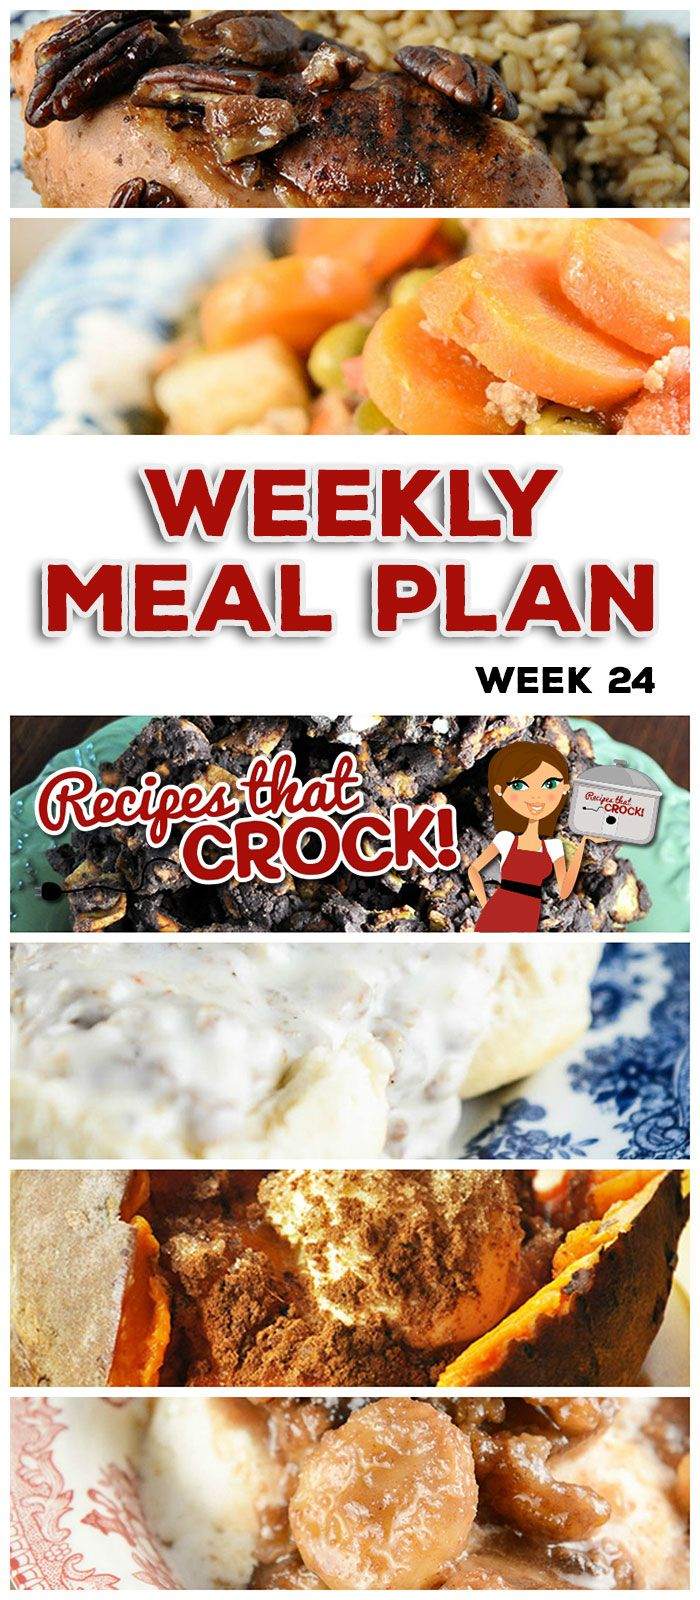 This week's weekly menu features Slow Cooker Sausage Gravy, Crock Pot Rumchata Banana Foster, Crock Pot Maple Praline Chicken, Crock Pot Sweet Potatoes, Easy Crock Pot Teriyaki Beef, Crock Pot Italian (Bake Goods Crock Pot)